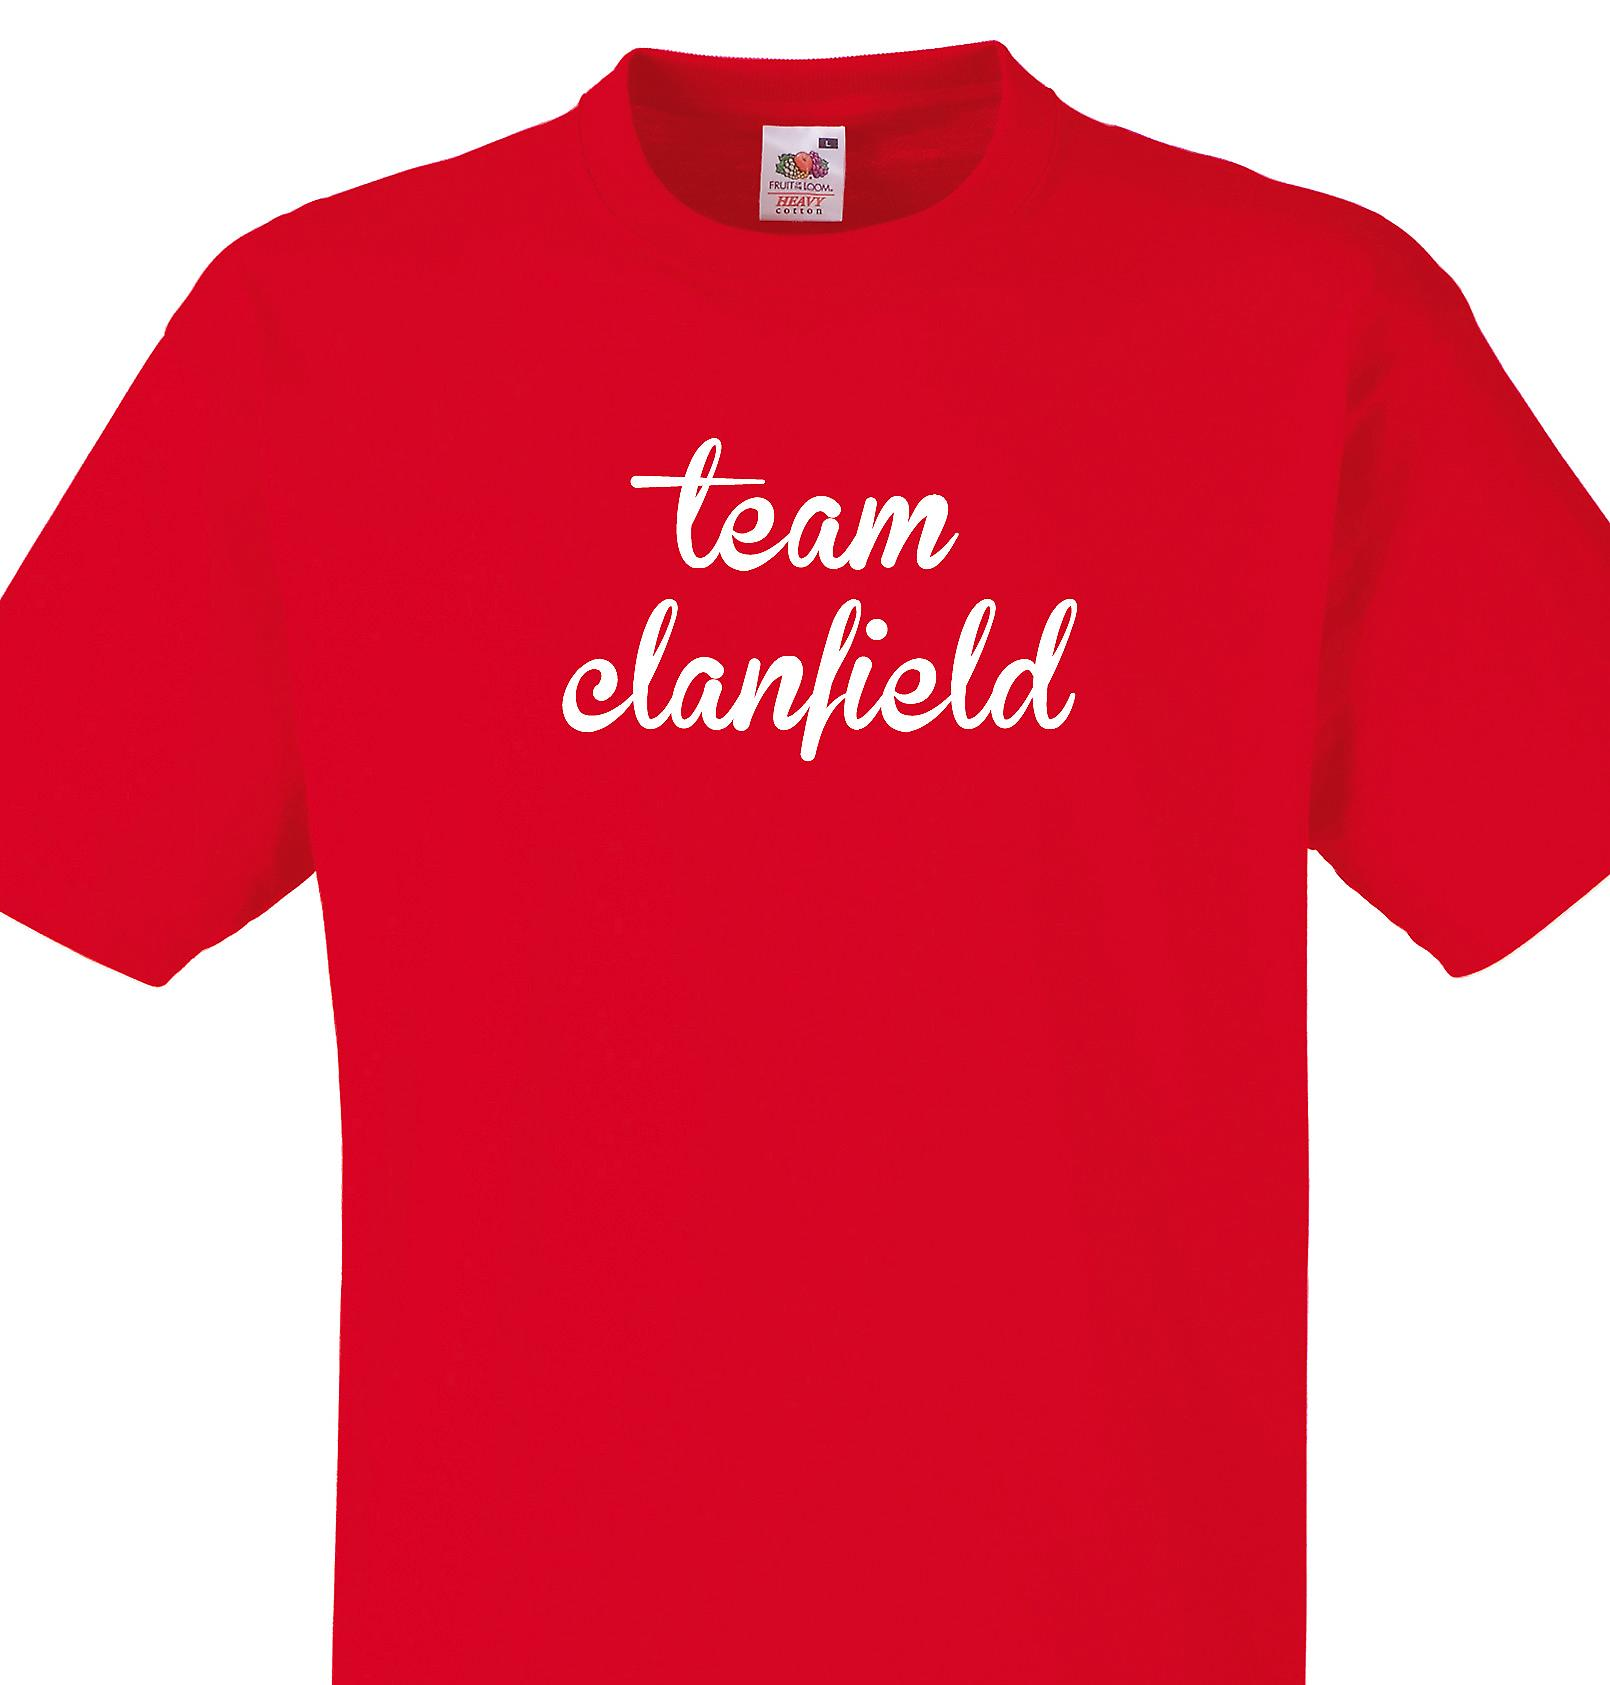 Team Clanfield Red T shirt